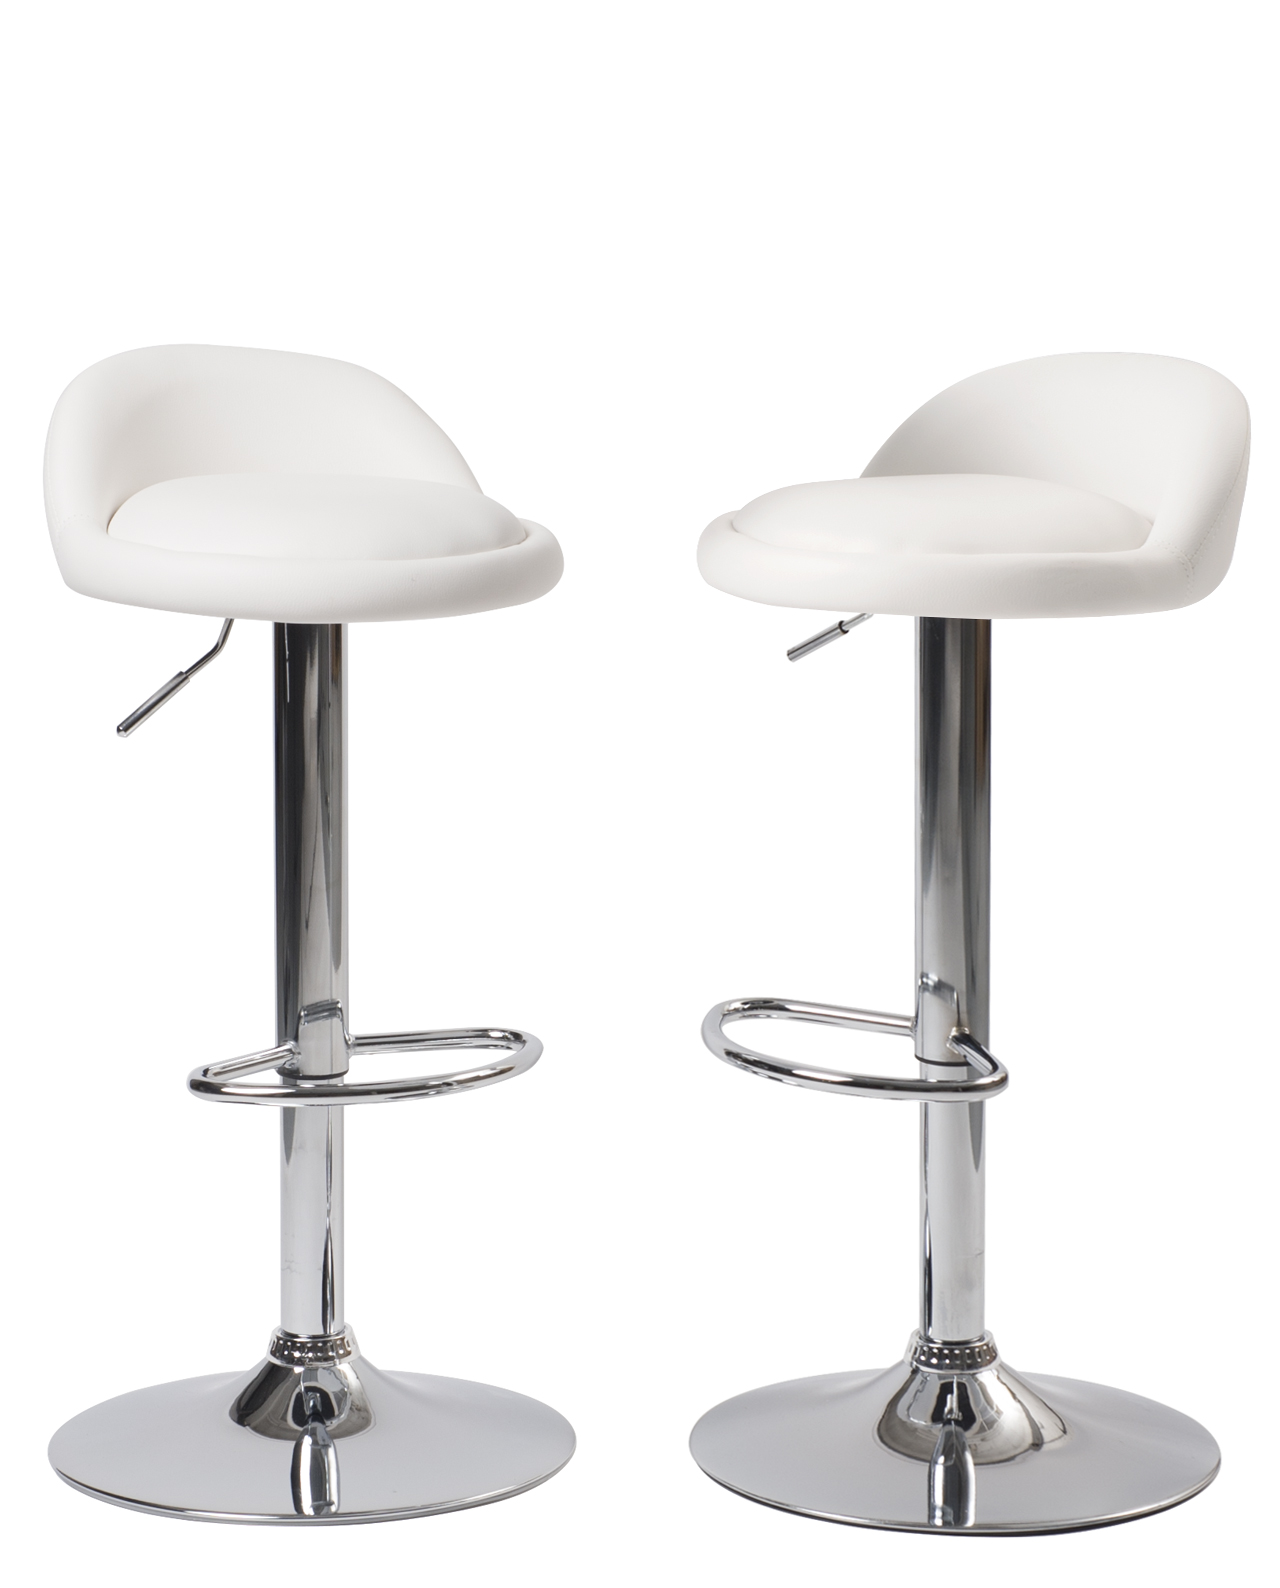 Tabourets De Bar Alu Sati Lot De 2 Tabourets De Bar Pu Et Chrome